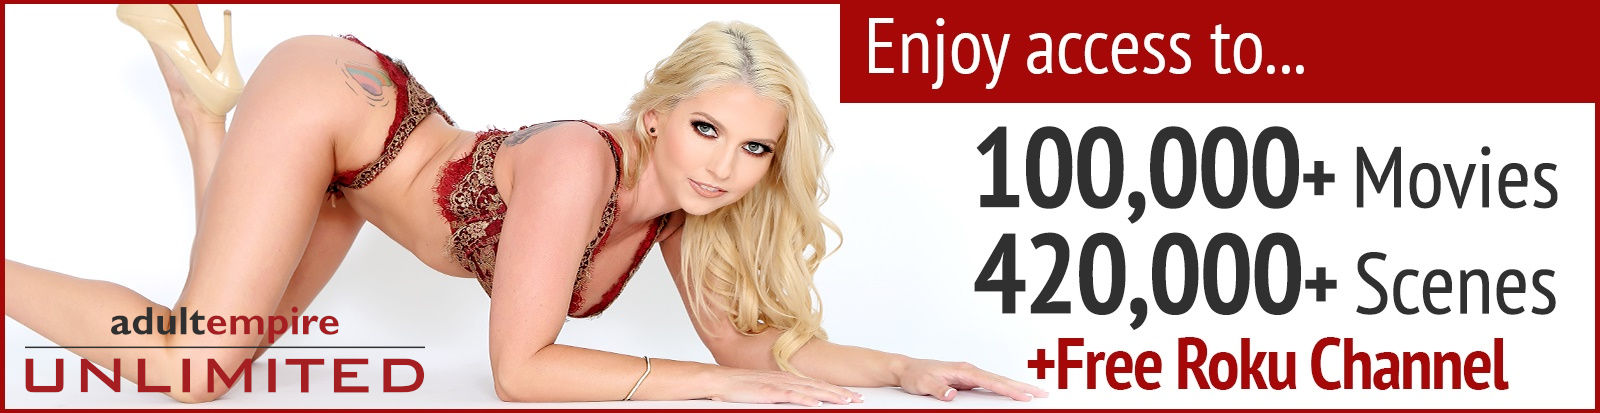 Stream over 100k adult movies on The Adult Empire Unlimited Roku Channel